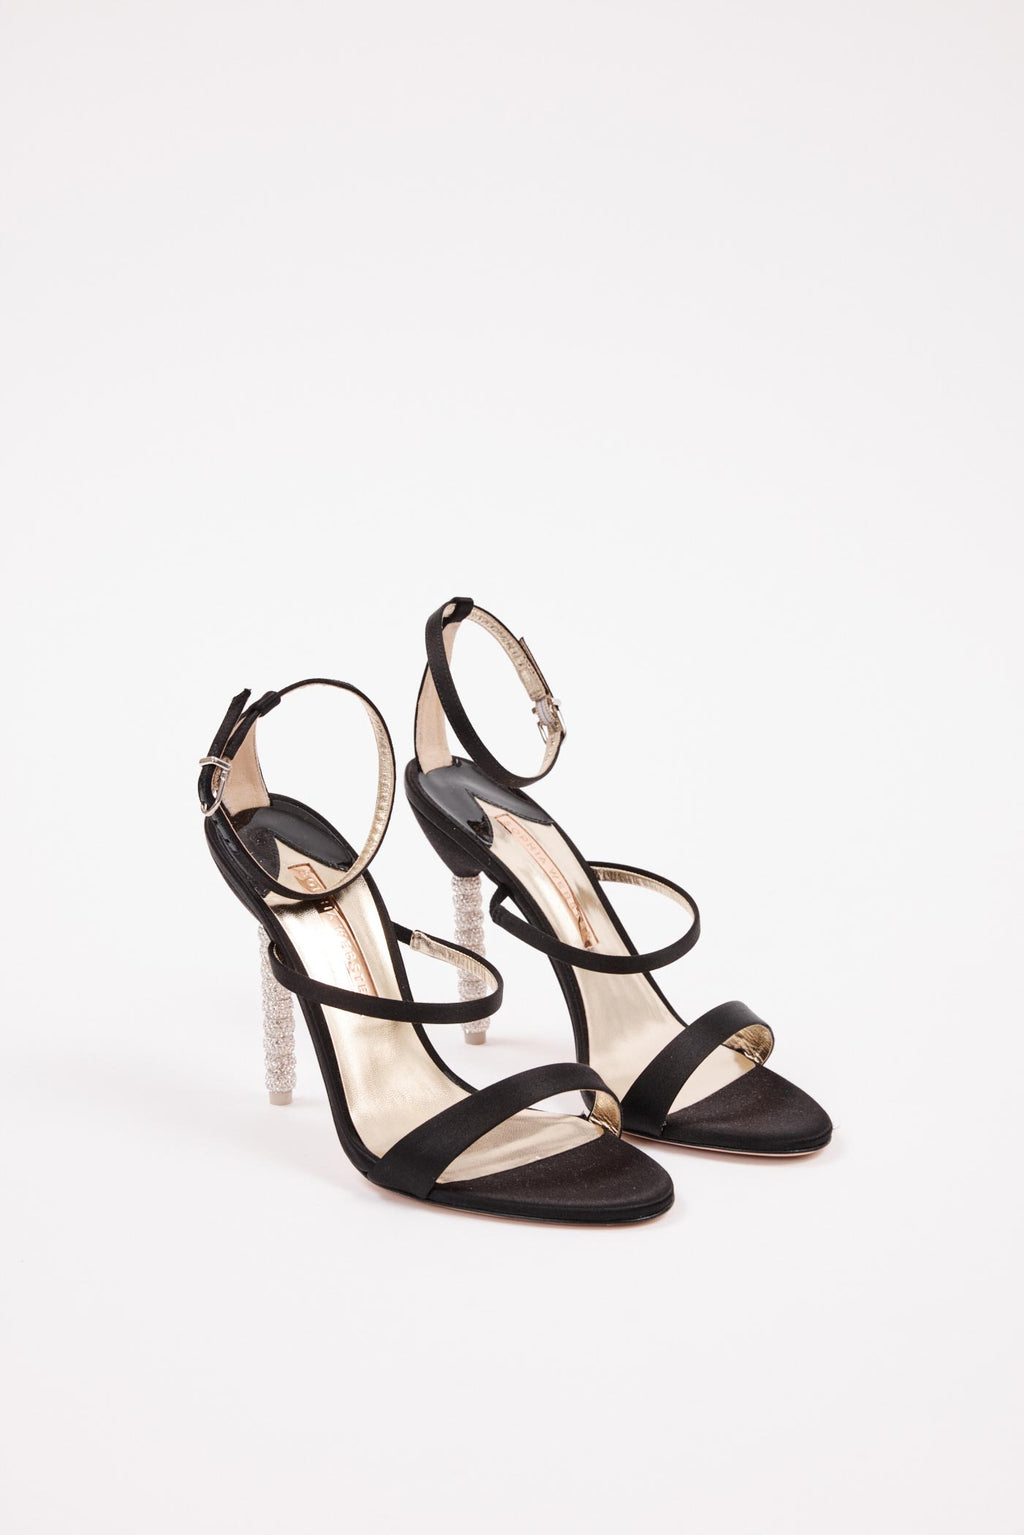 Rosalind Black Satin Heel